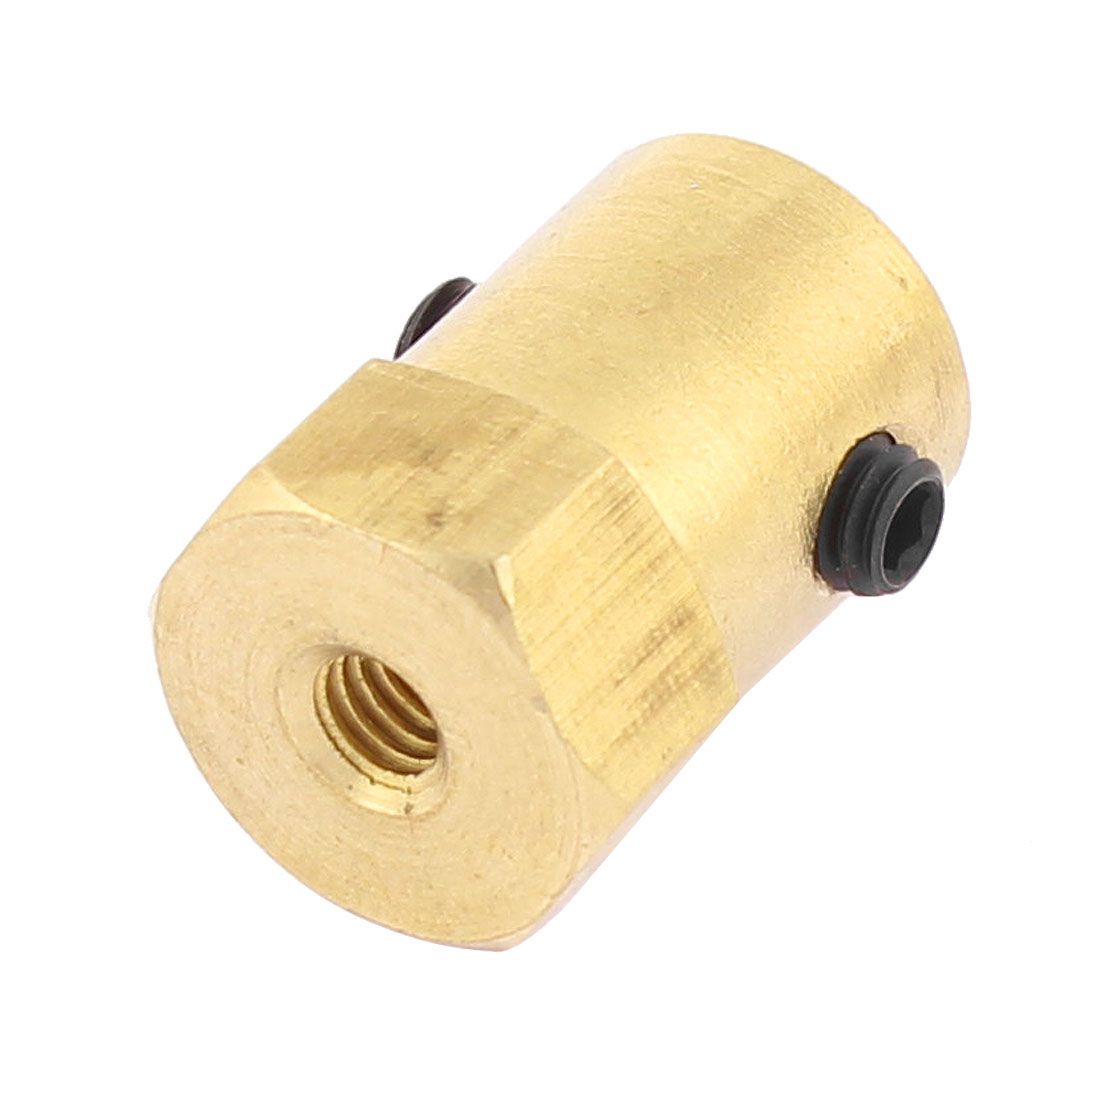 6mm Shaft Motor Wheel Flexible Coupling Coupler Connector